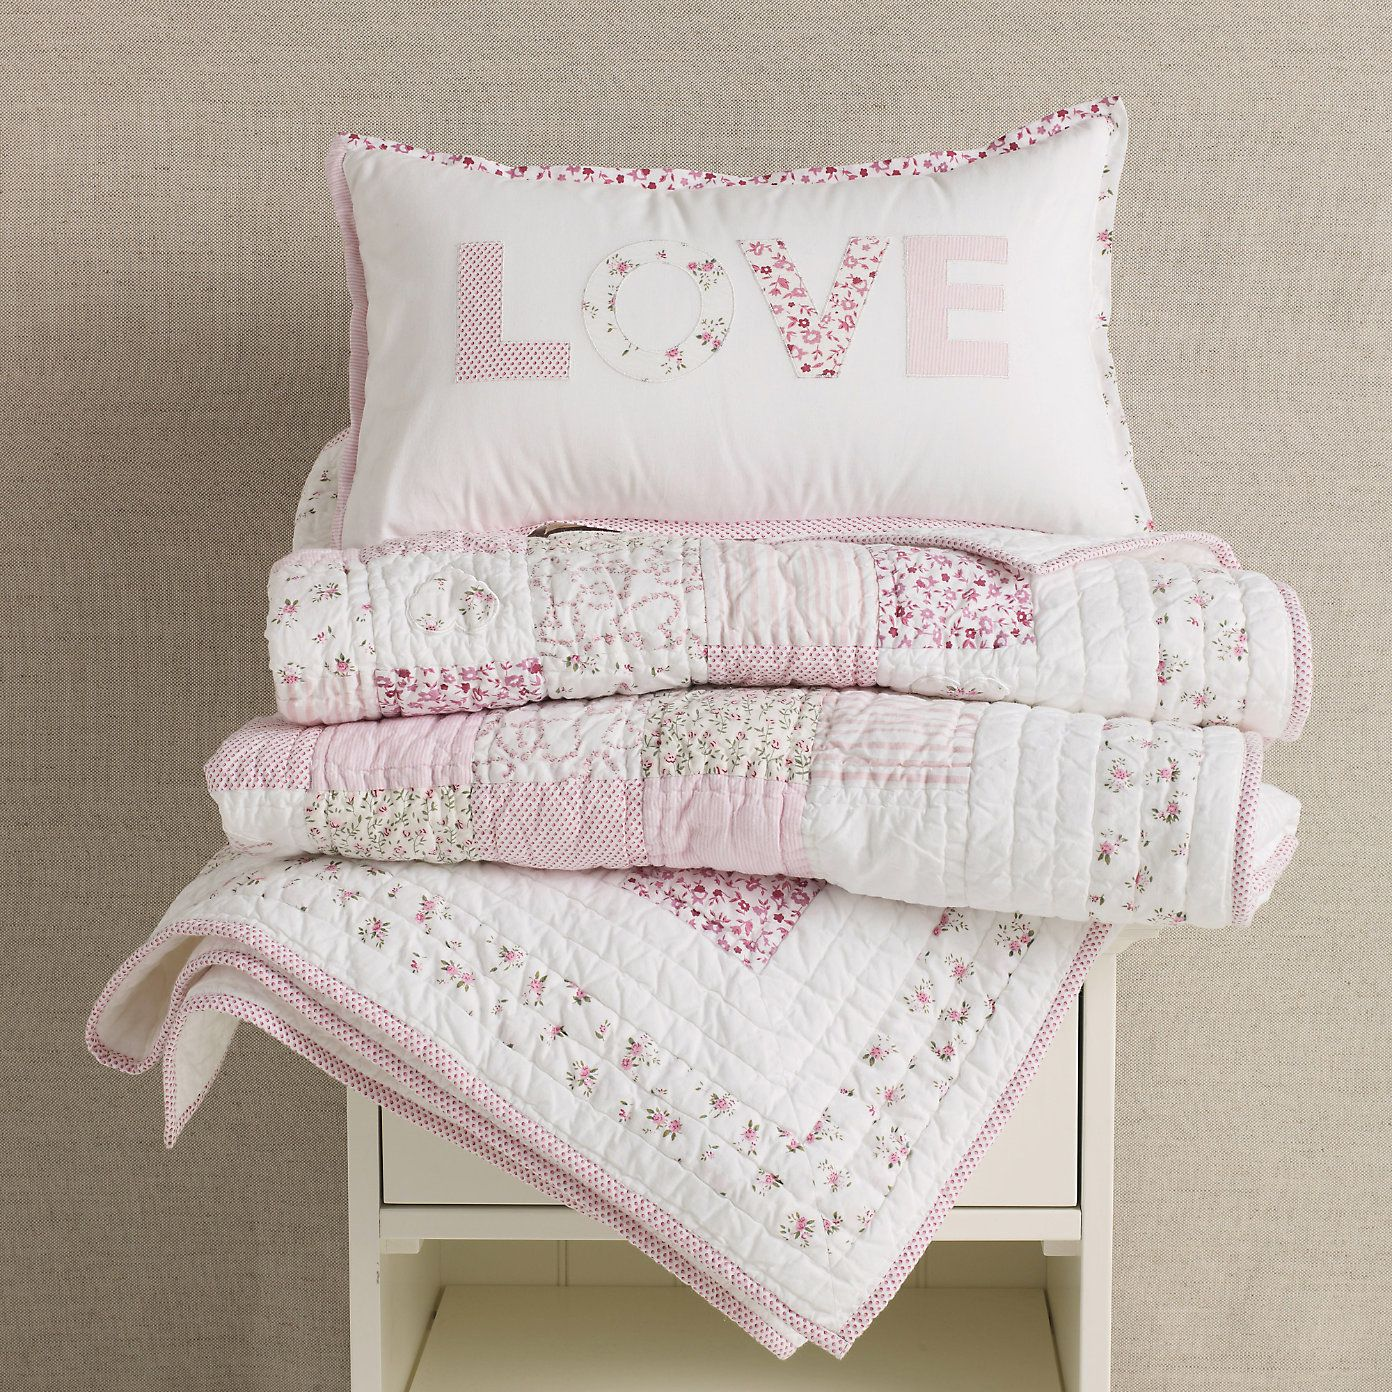 Milly Quilt From The White Company Kenzie Amp Kynden